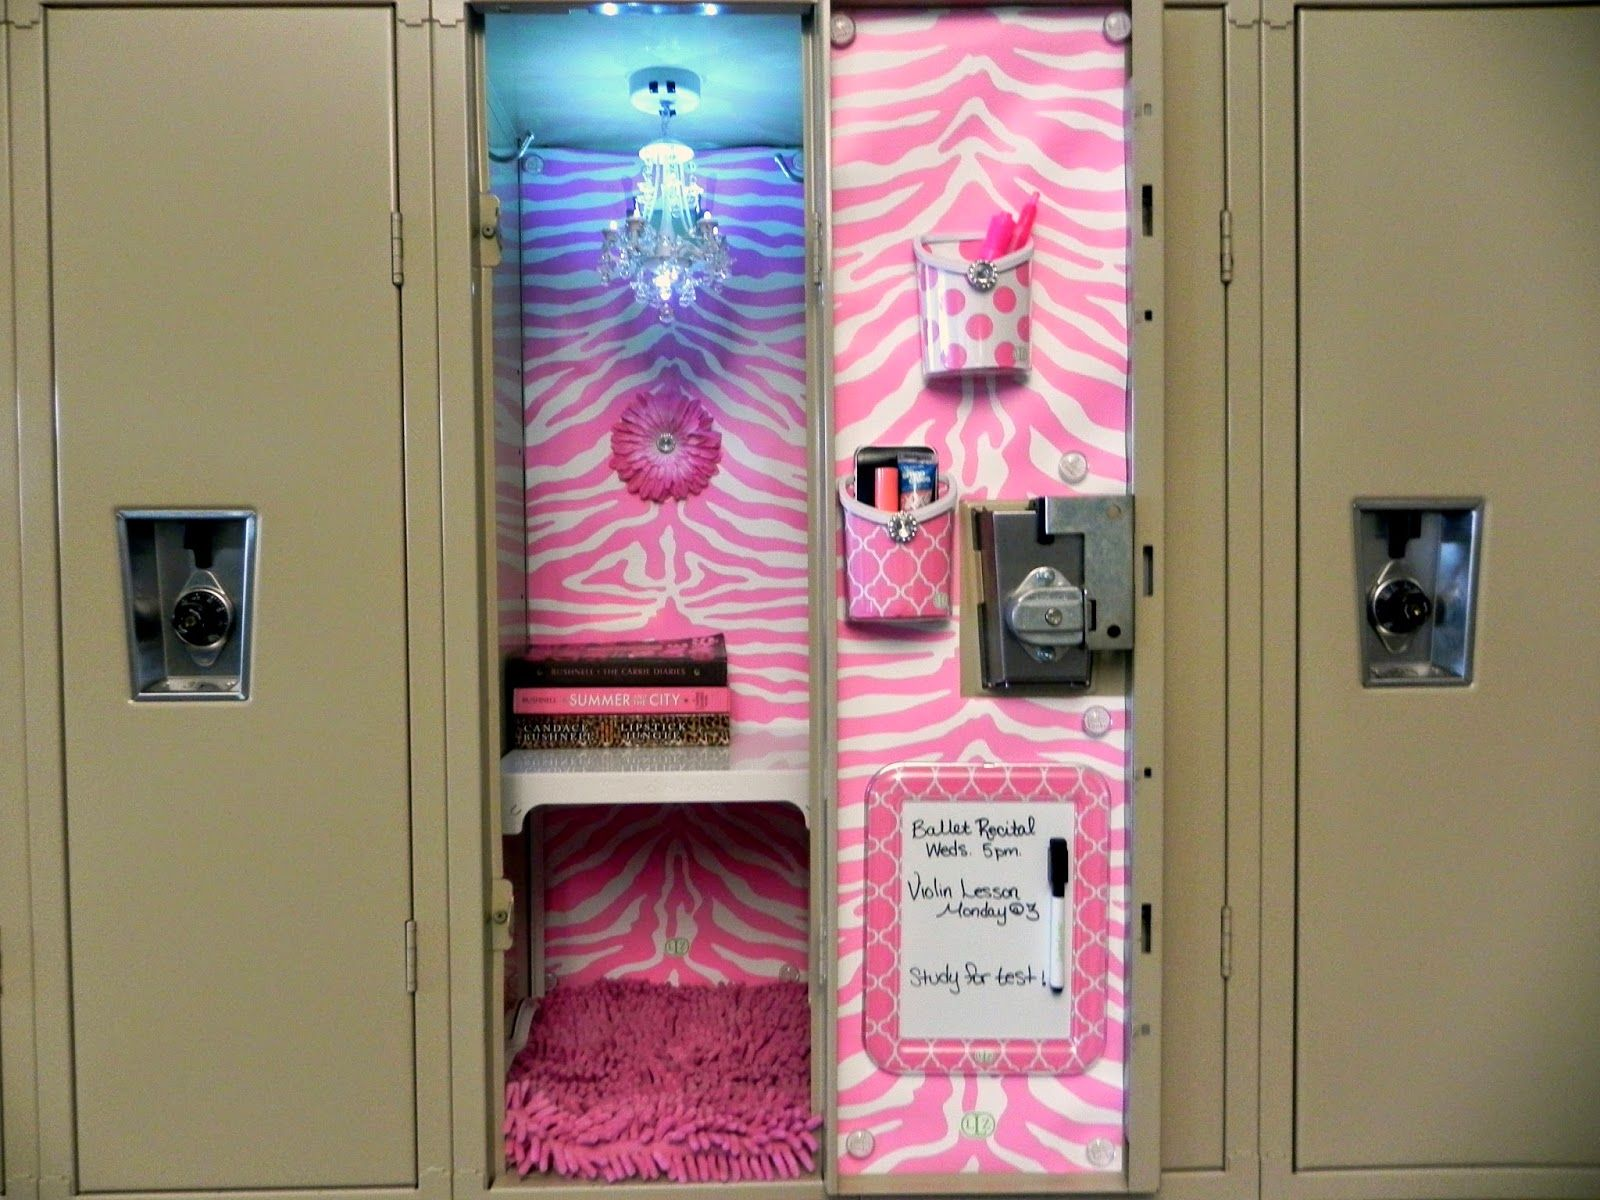 Locker Decoration Ideas girly locker decoration ideas | danasoki.top - locker decorations